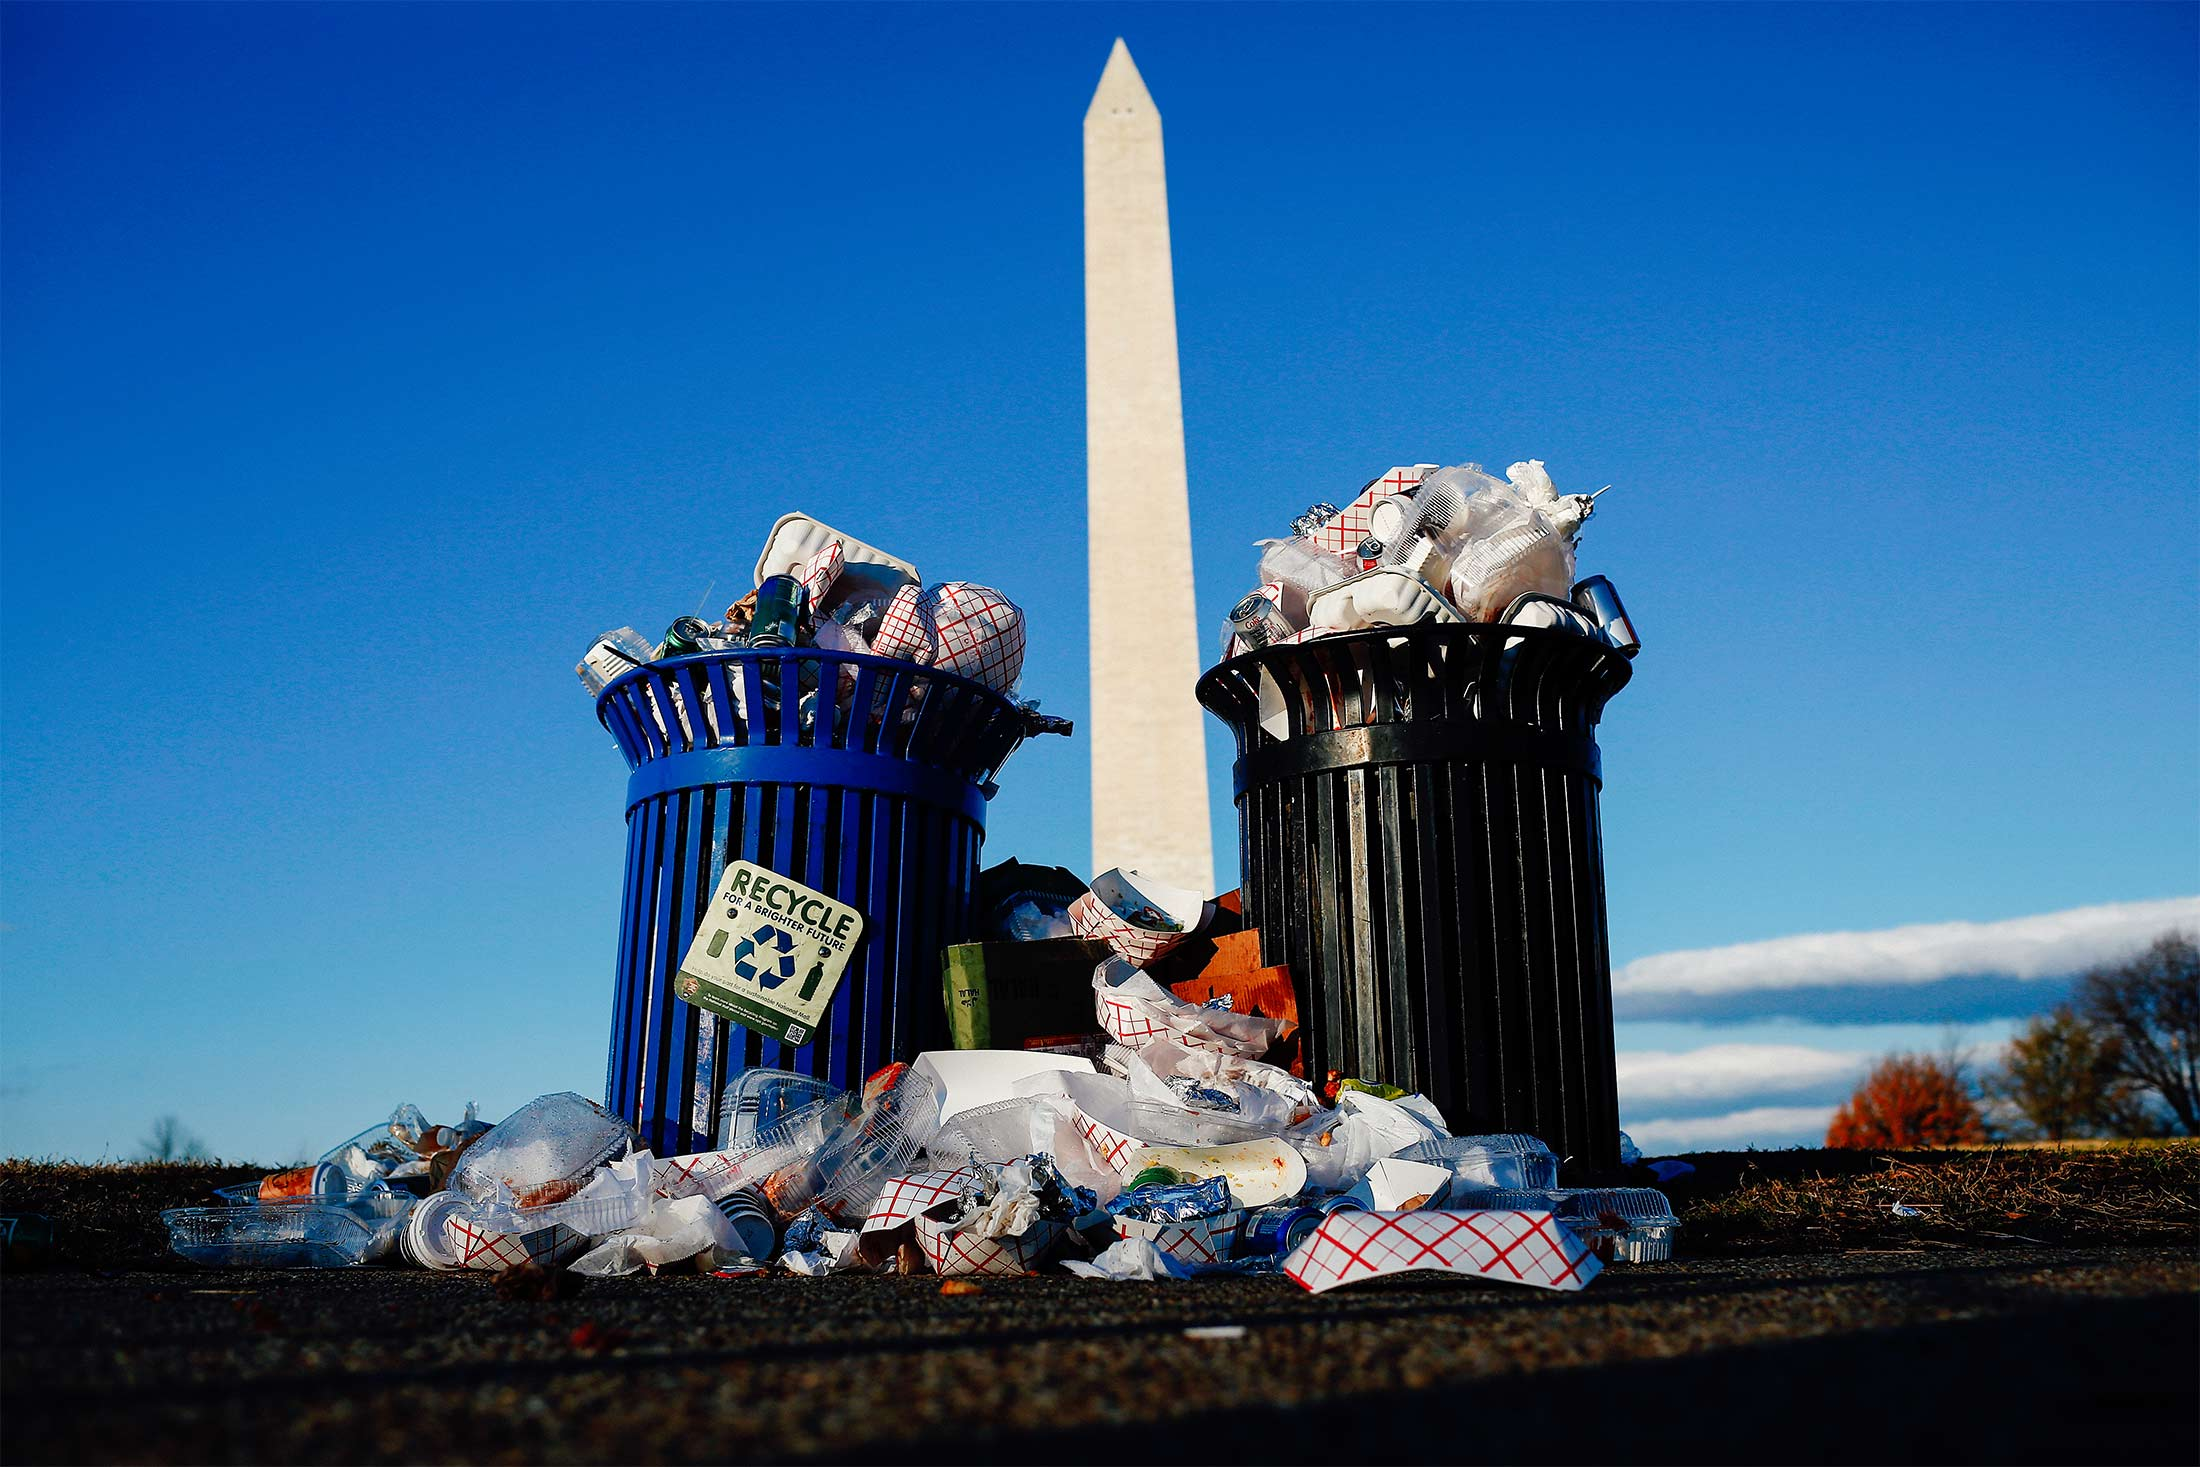 Trash overflows from a trash bin and a recycle bin, in front of the Washington Monument.